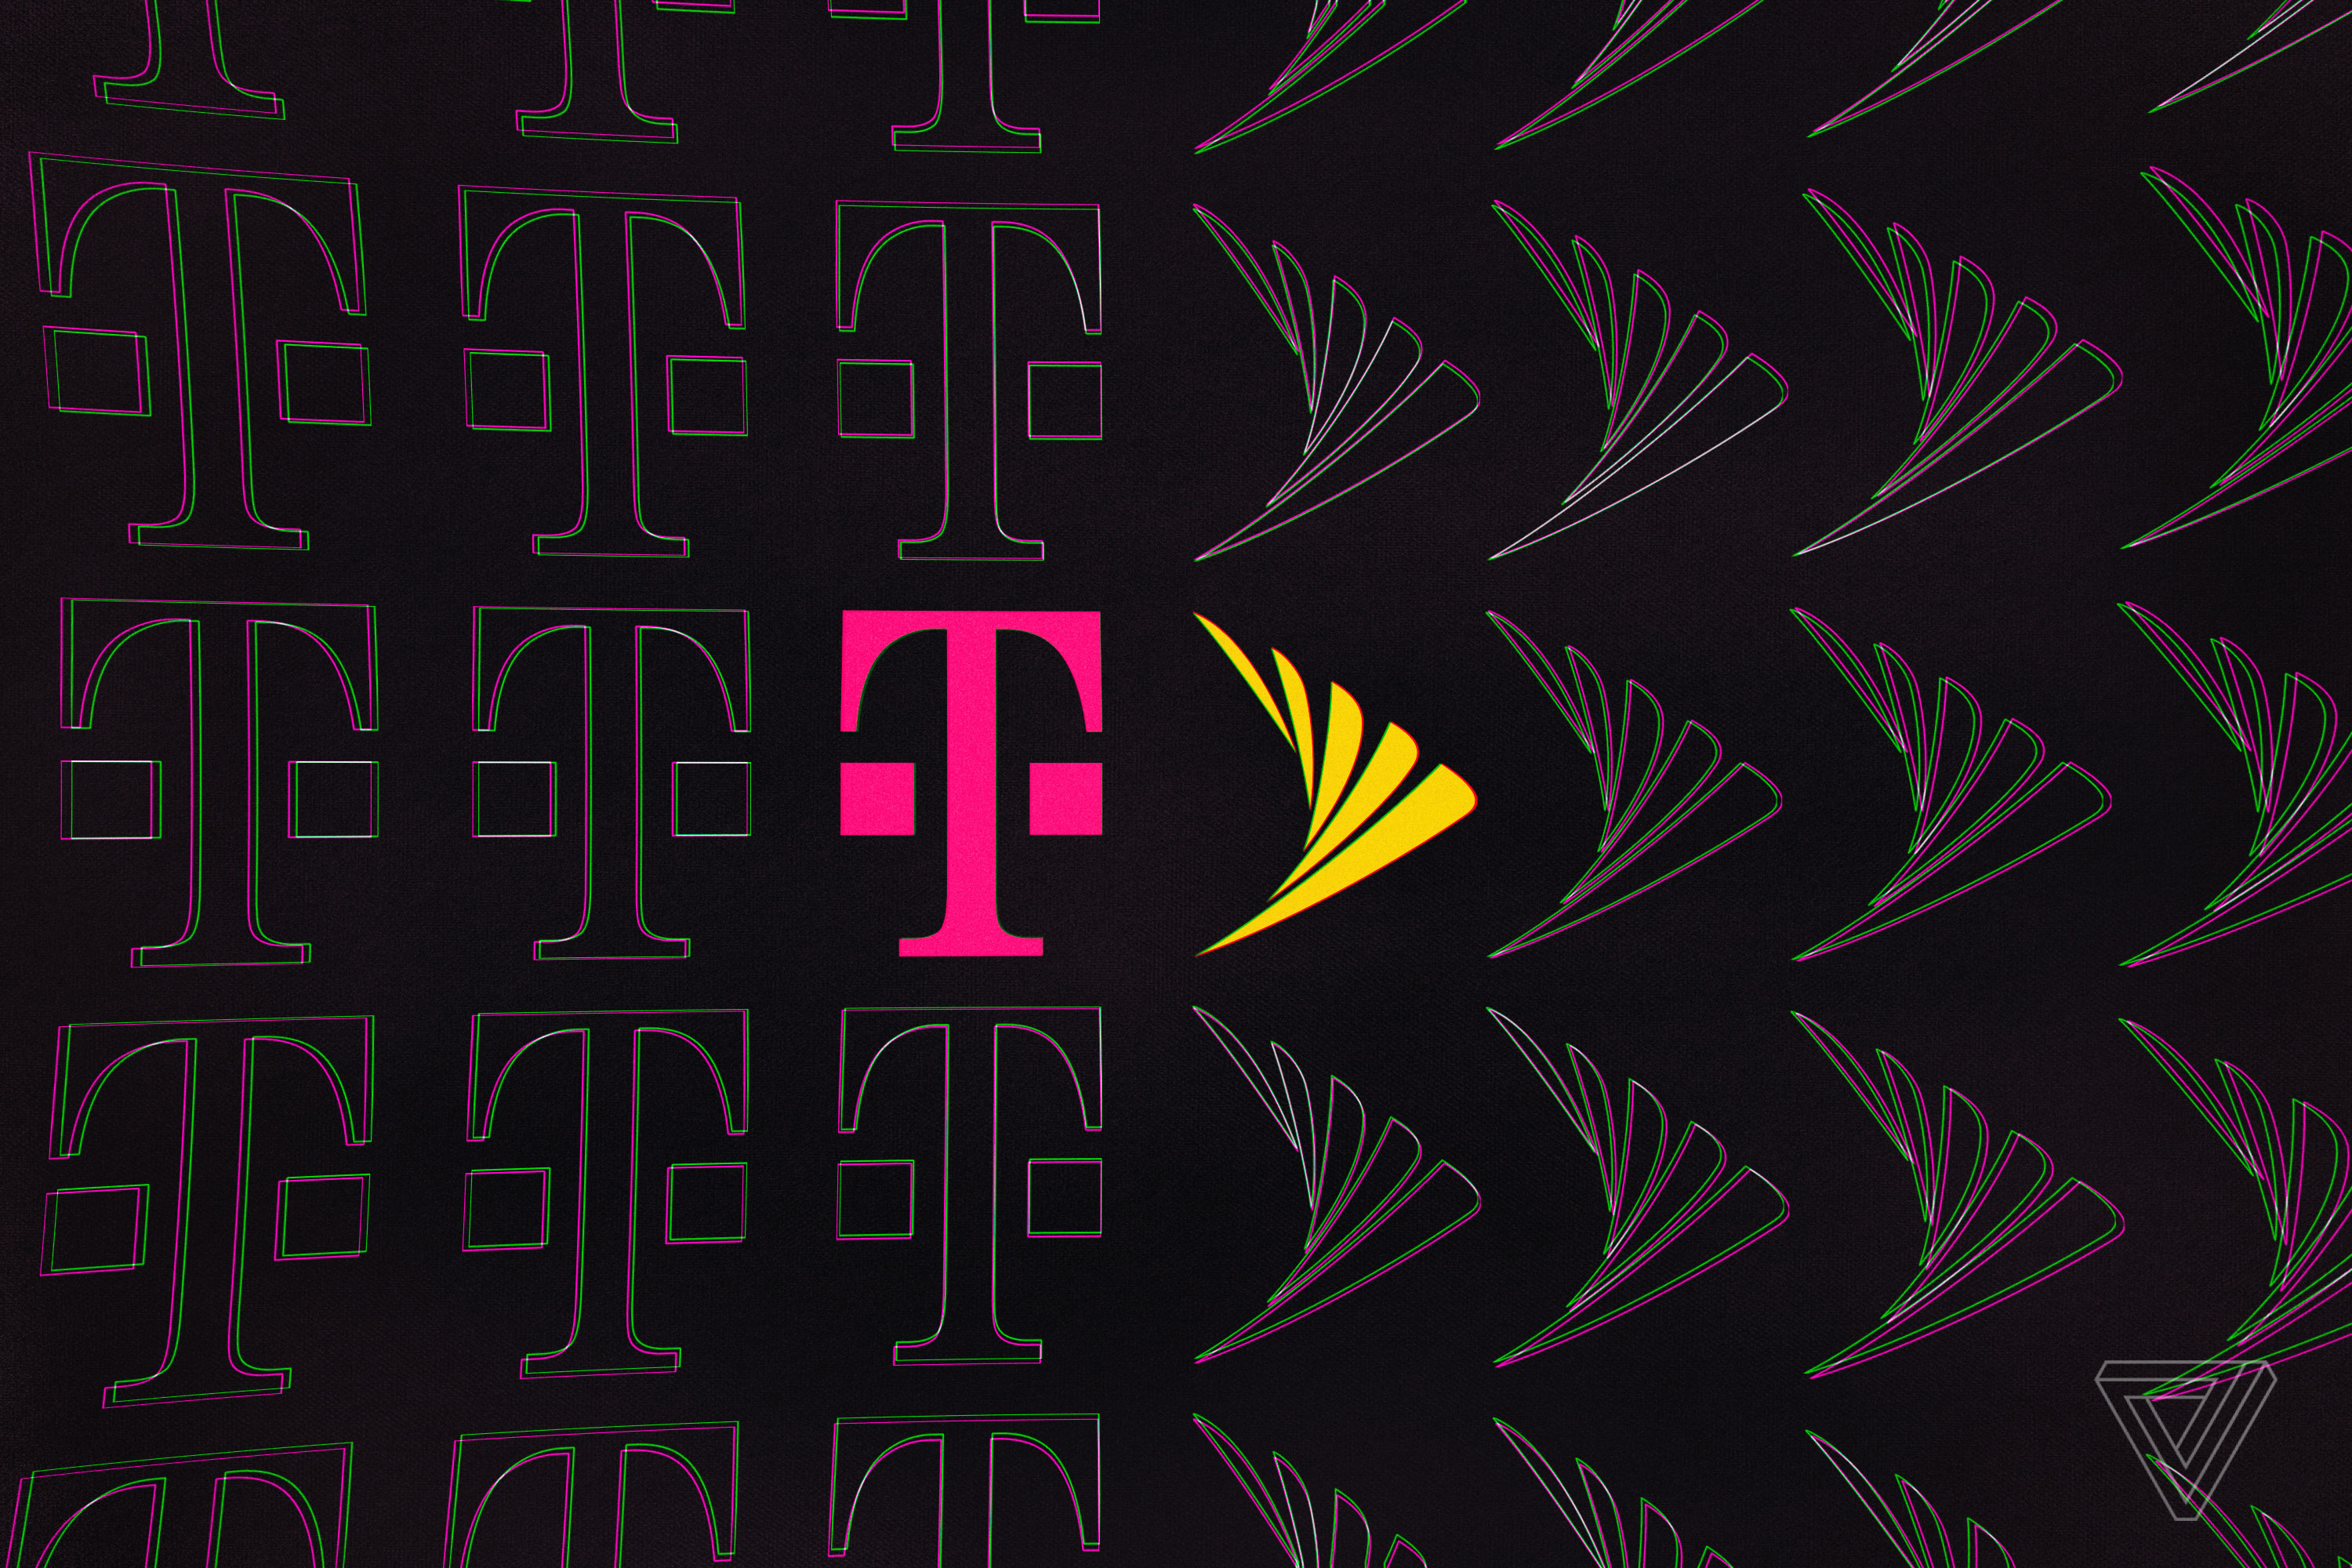 T Mobile Promises Amazing 5g Home Internet If Sprint Merger Is